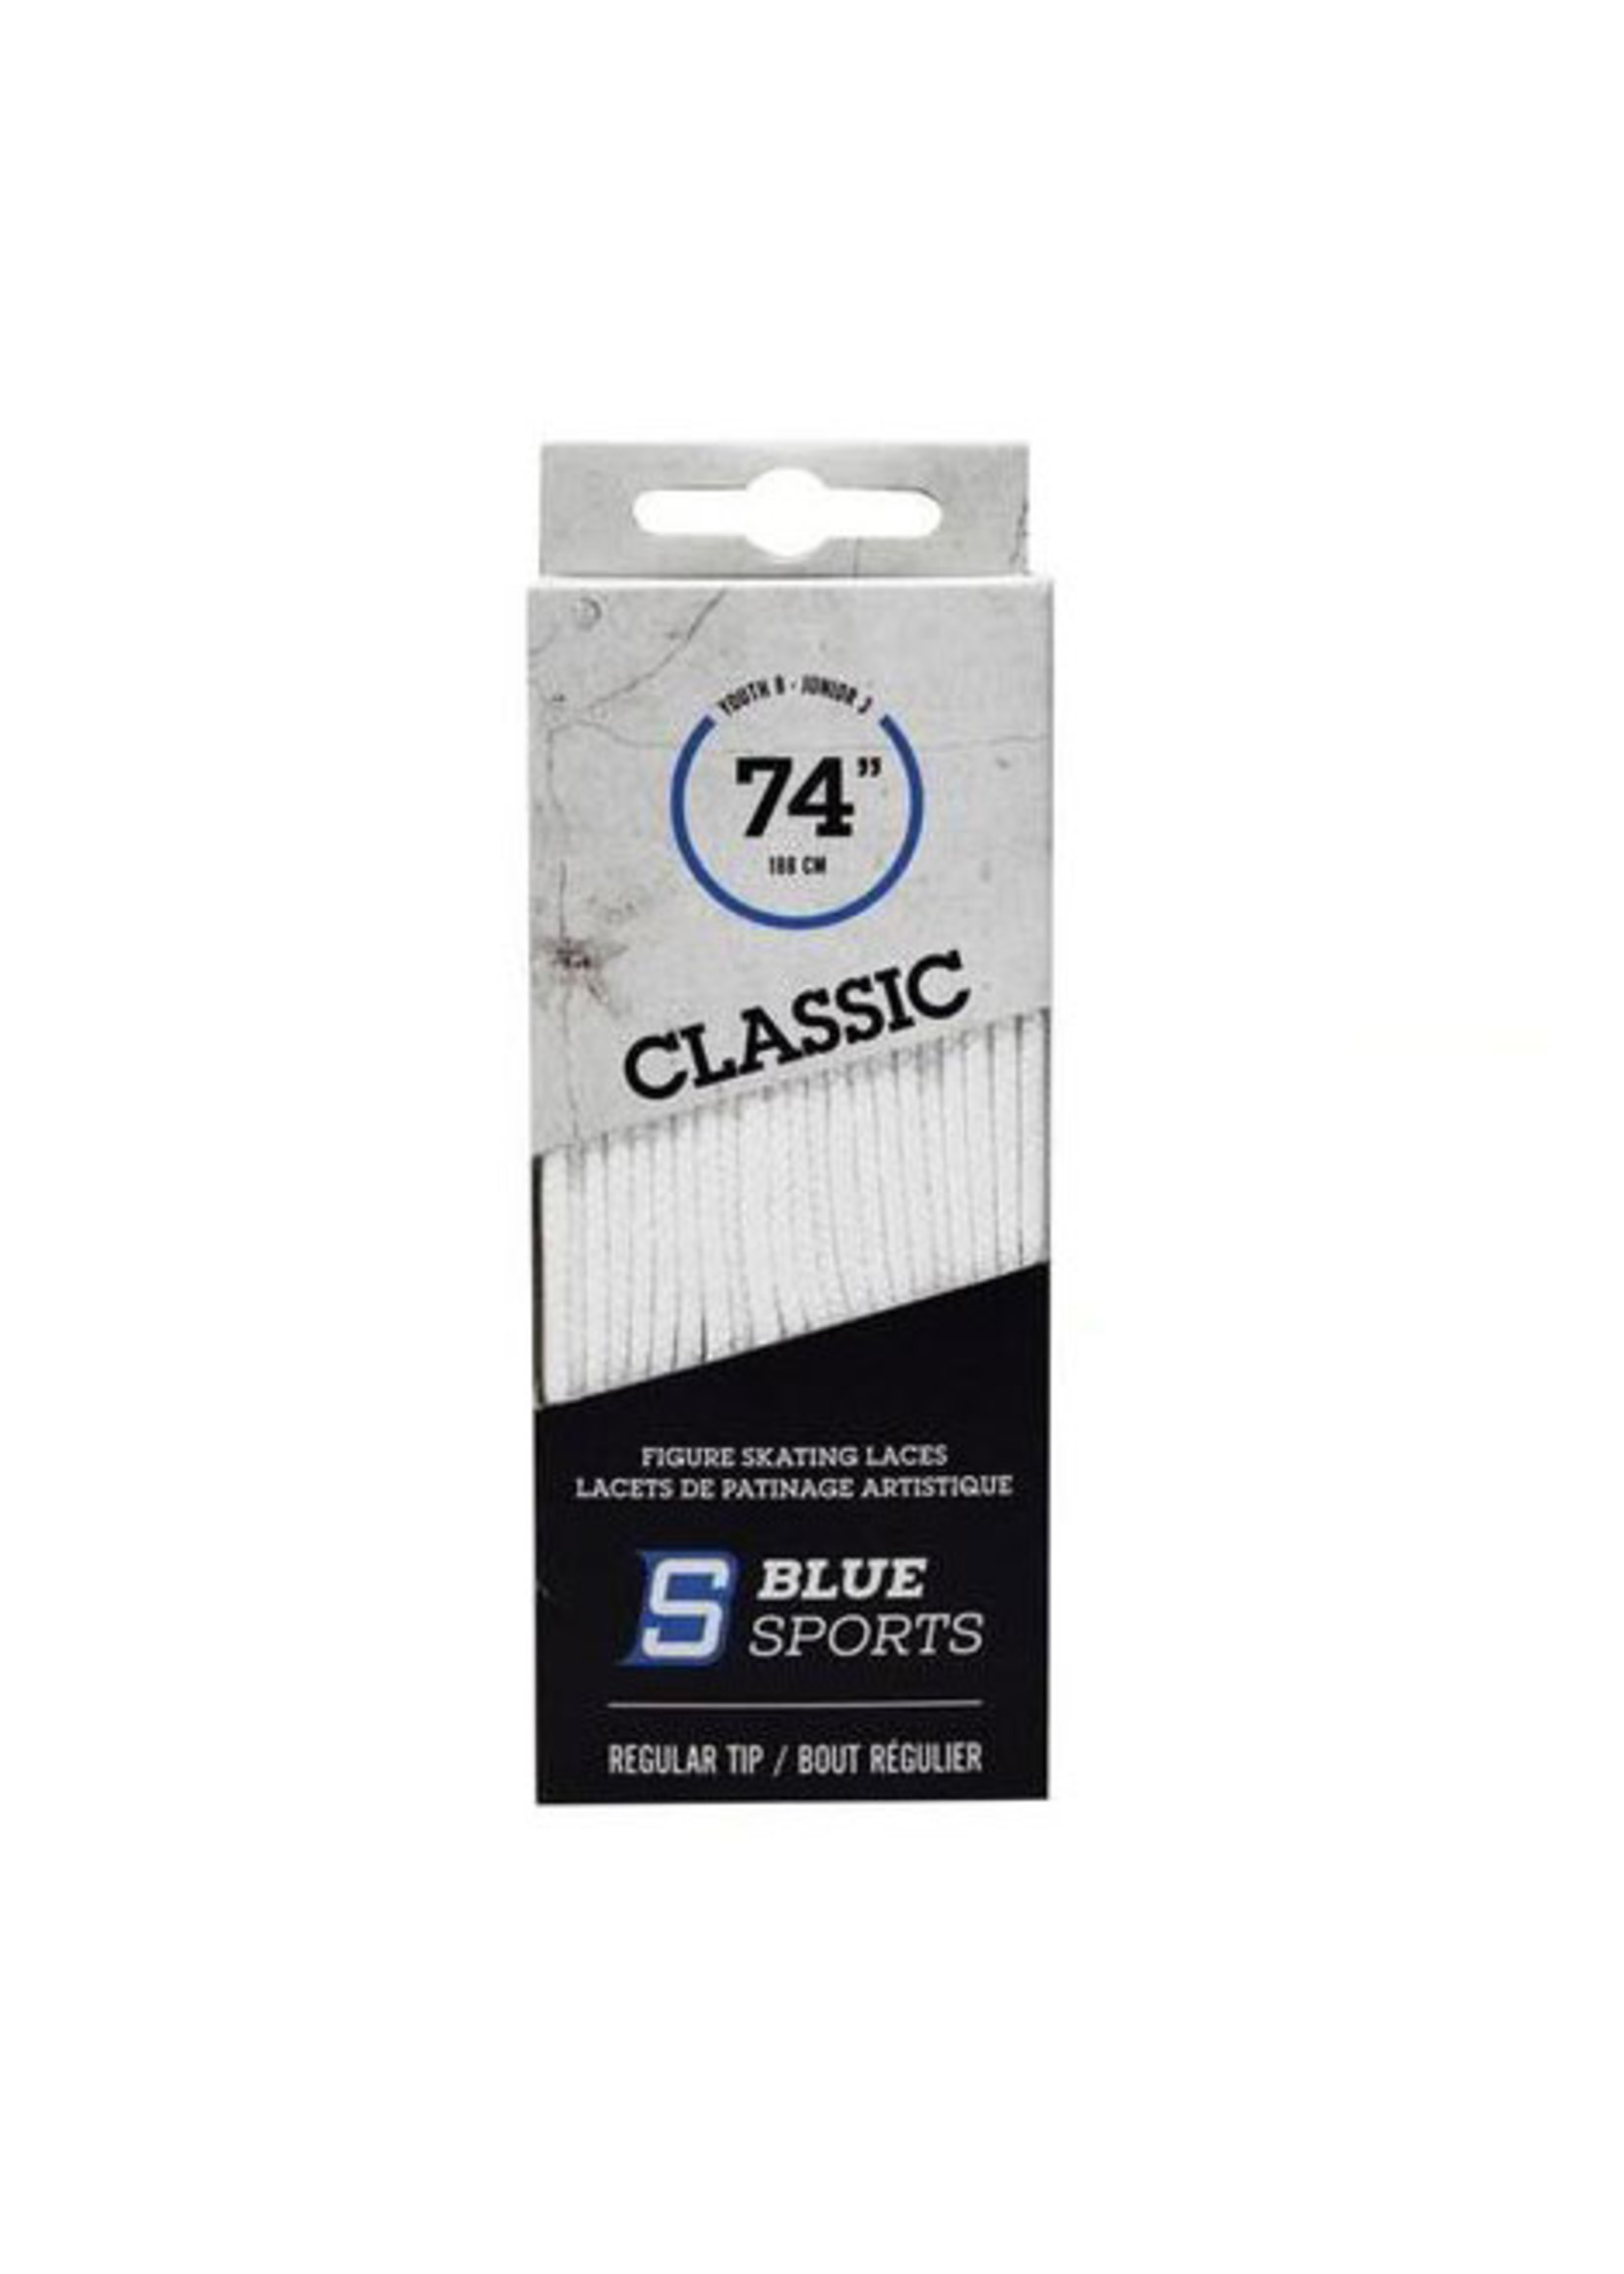 BLUE SPORTS CLASSIC FIGURE SKATING LACES